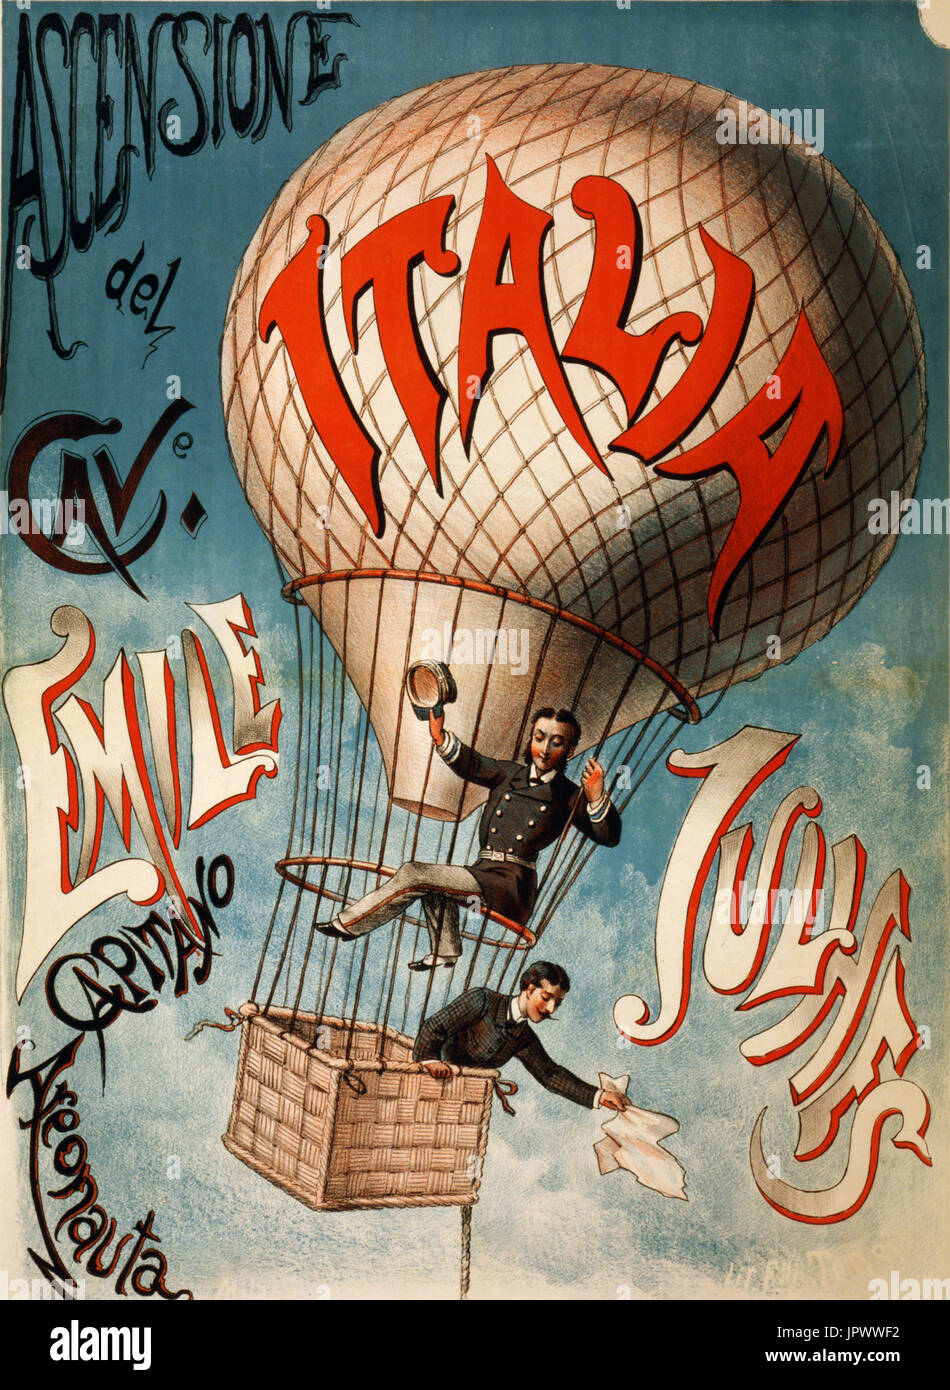 EMILE-LOUIS  JULHES (1855-1895)  French balloonist (upper figure) who died after a crash near Le Havre in July 1885. - Stock Image